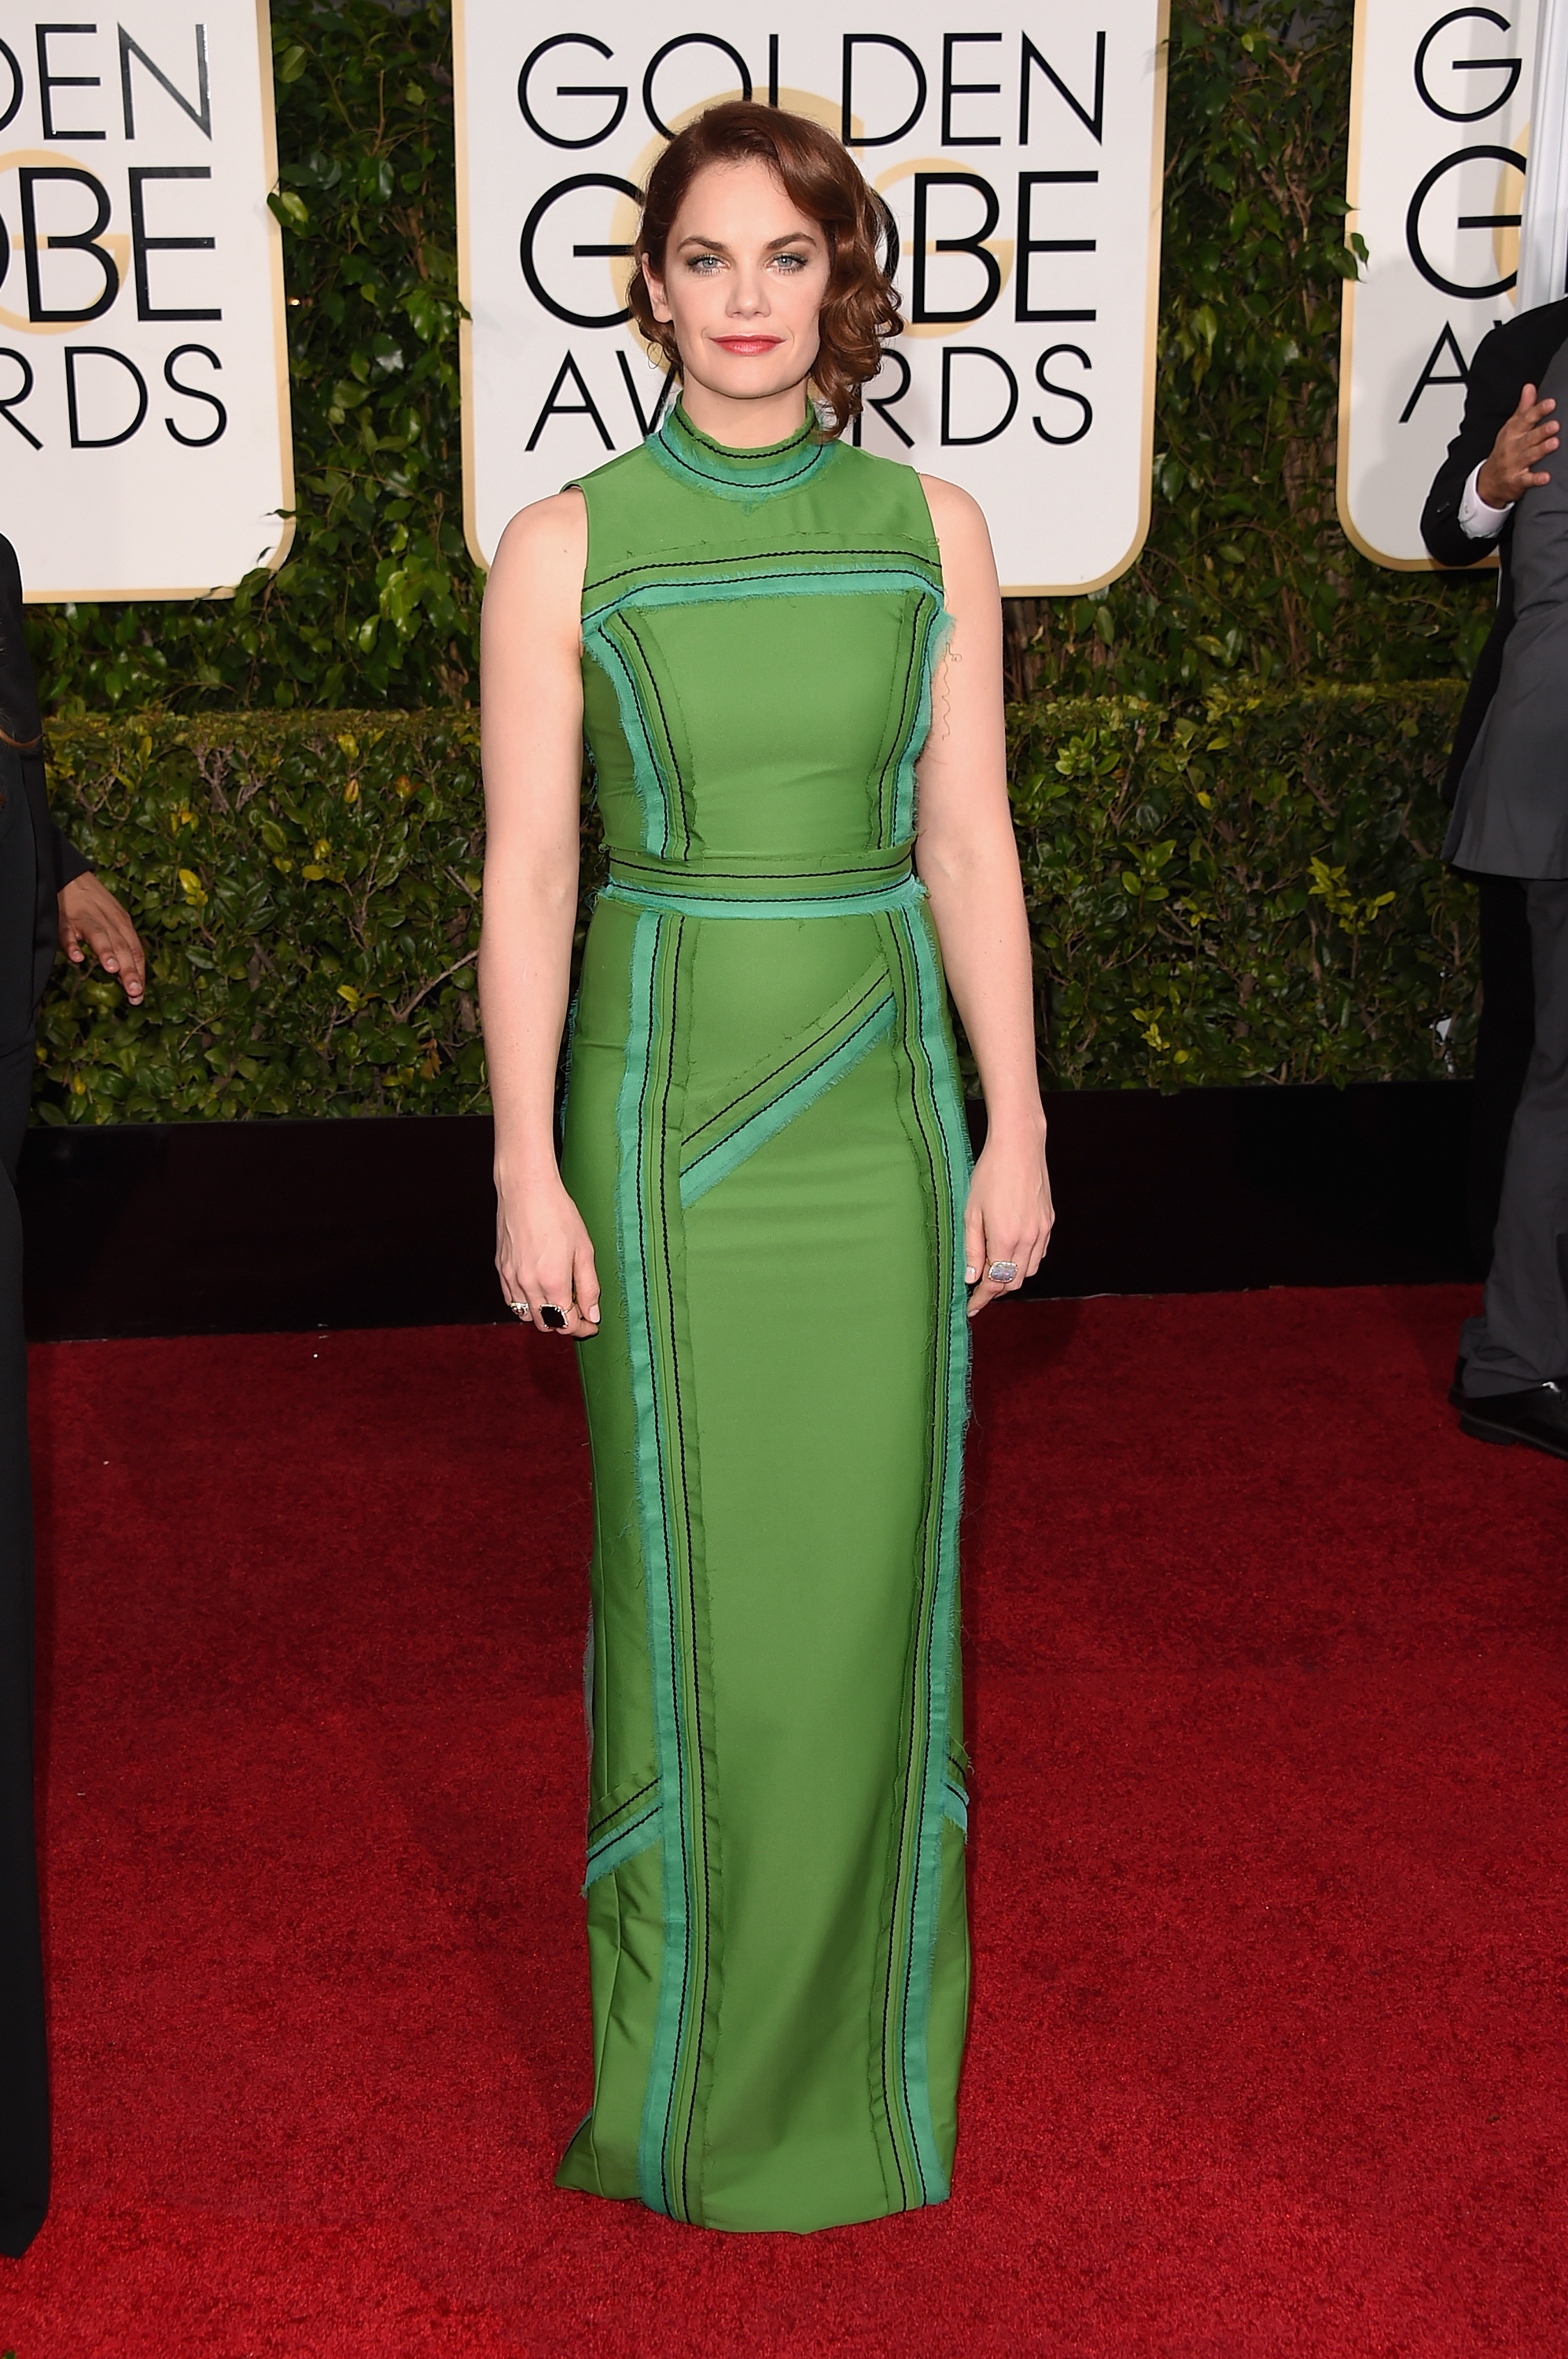 ruth-wilson-golden-globes-2015-461363802